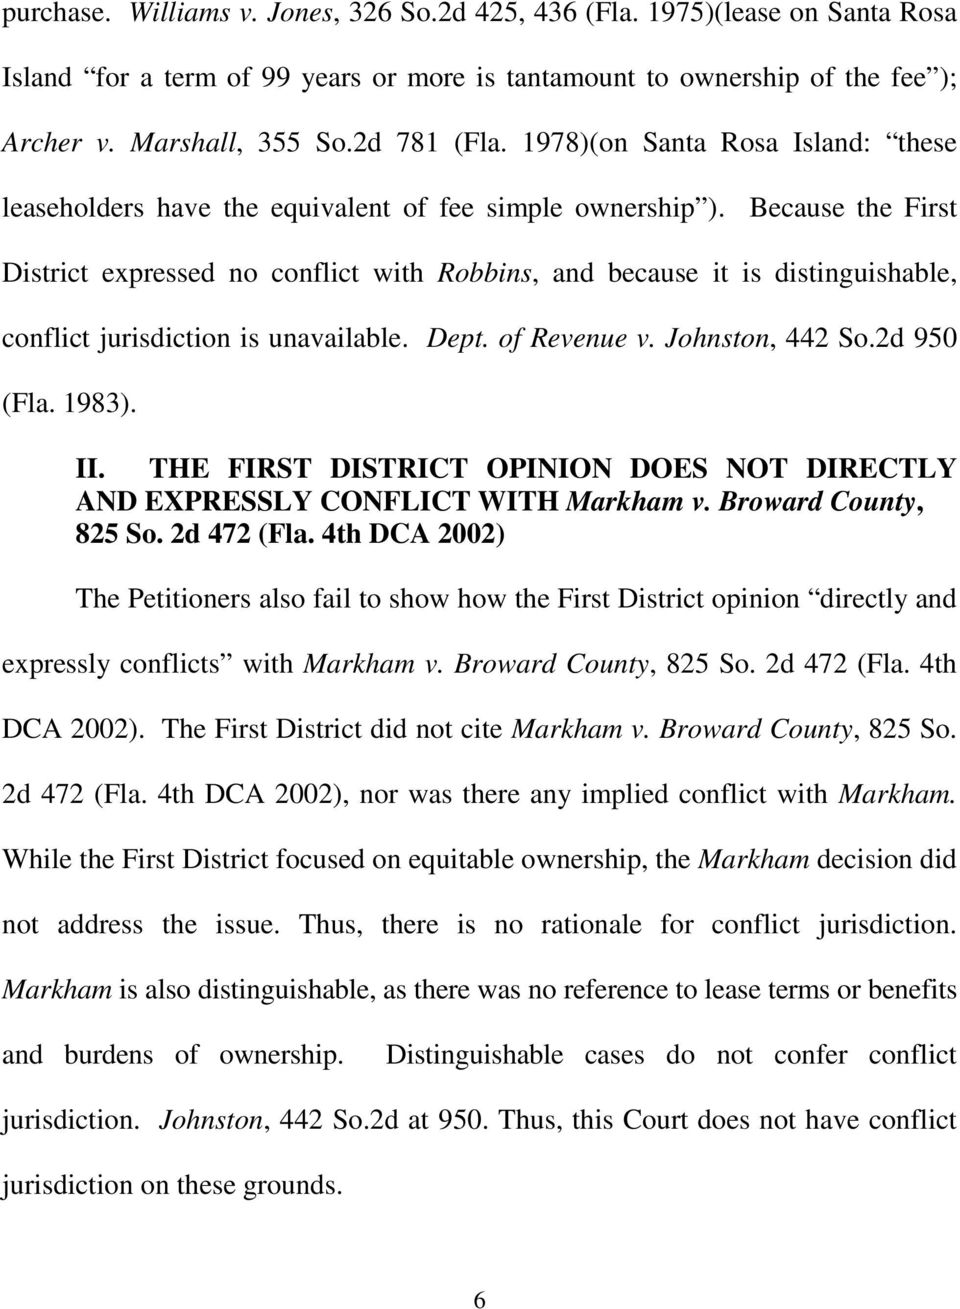 Because the First District expressed no conflict with Robbins, and because it is distinguishable, conflict jurisdiction is unavailable. Dept. of Revenue v. Johnston, 442 So.2d 950 (Fla. 1983). II.